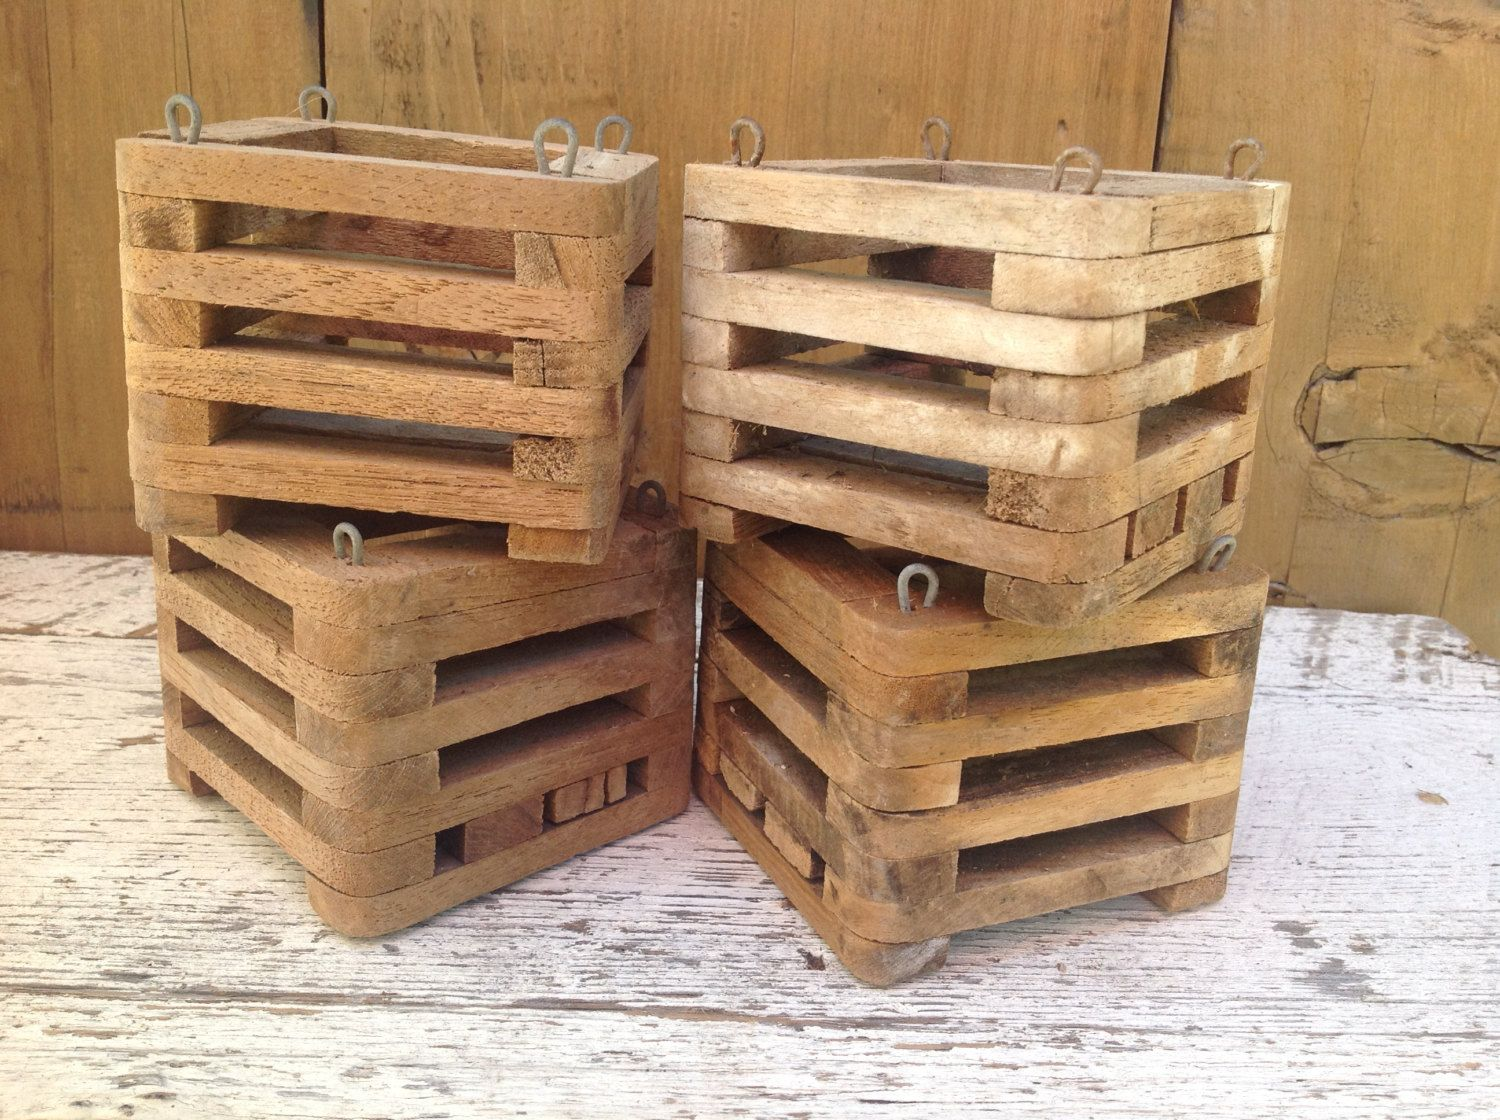 Decorative Ways To Use Small Wooden Crates Instead Of Throwing Them Away